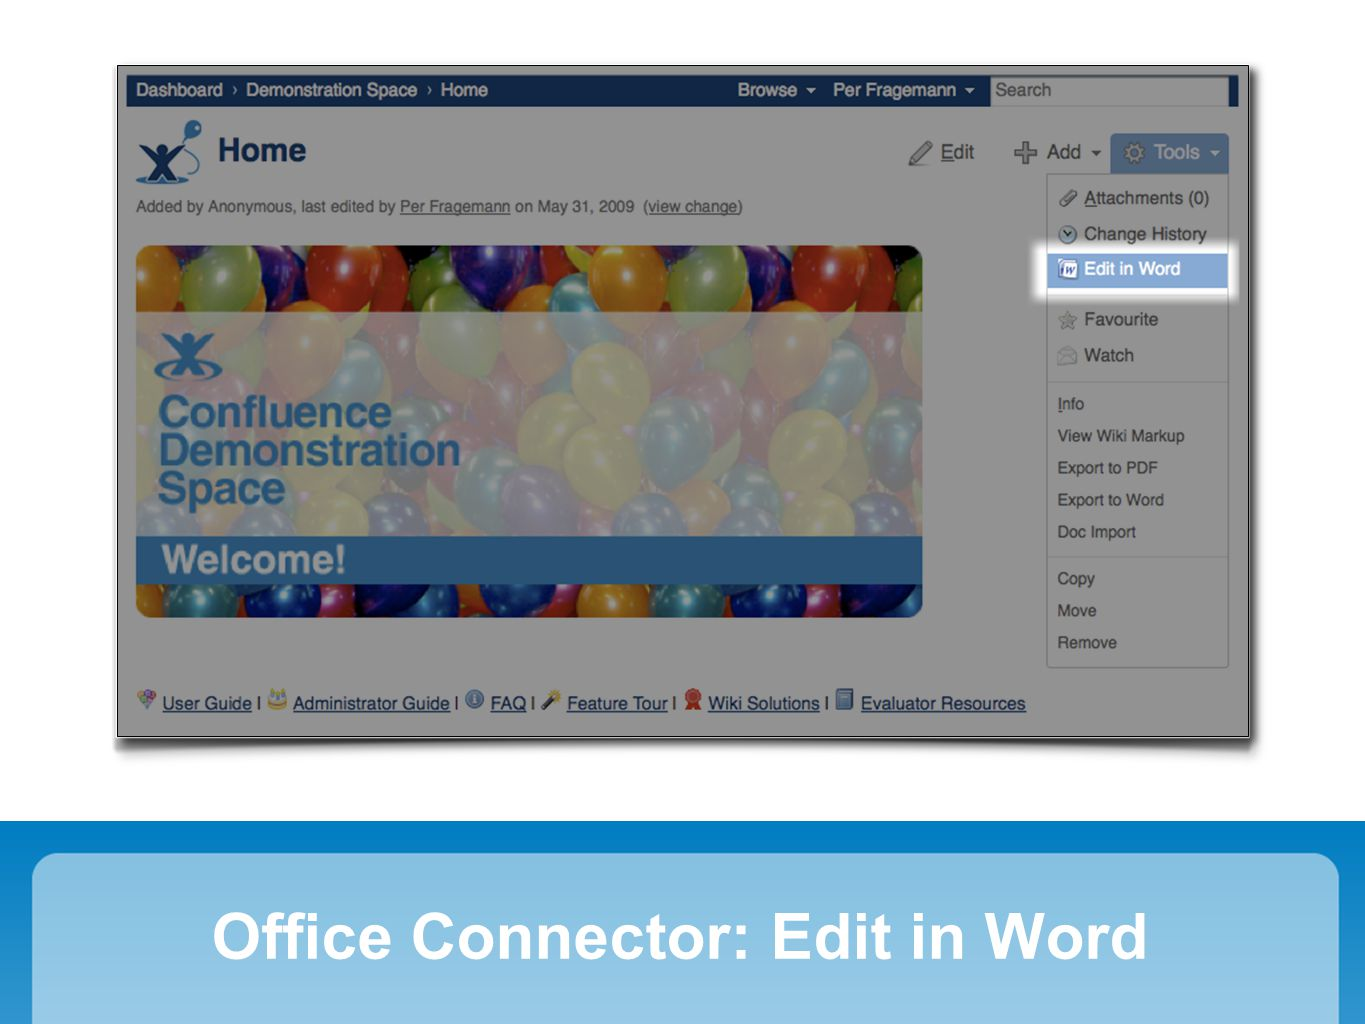 Office Connector: Edit in Word